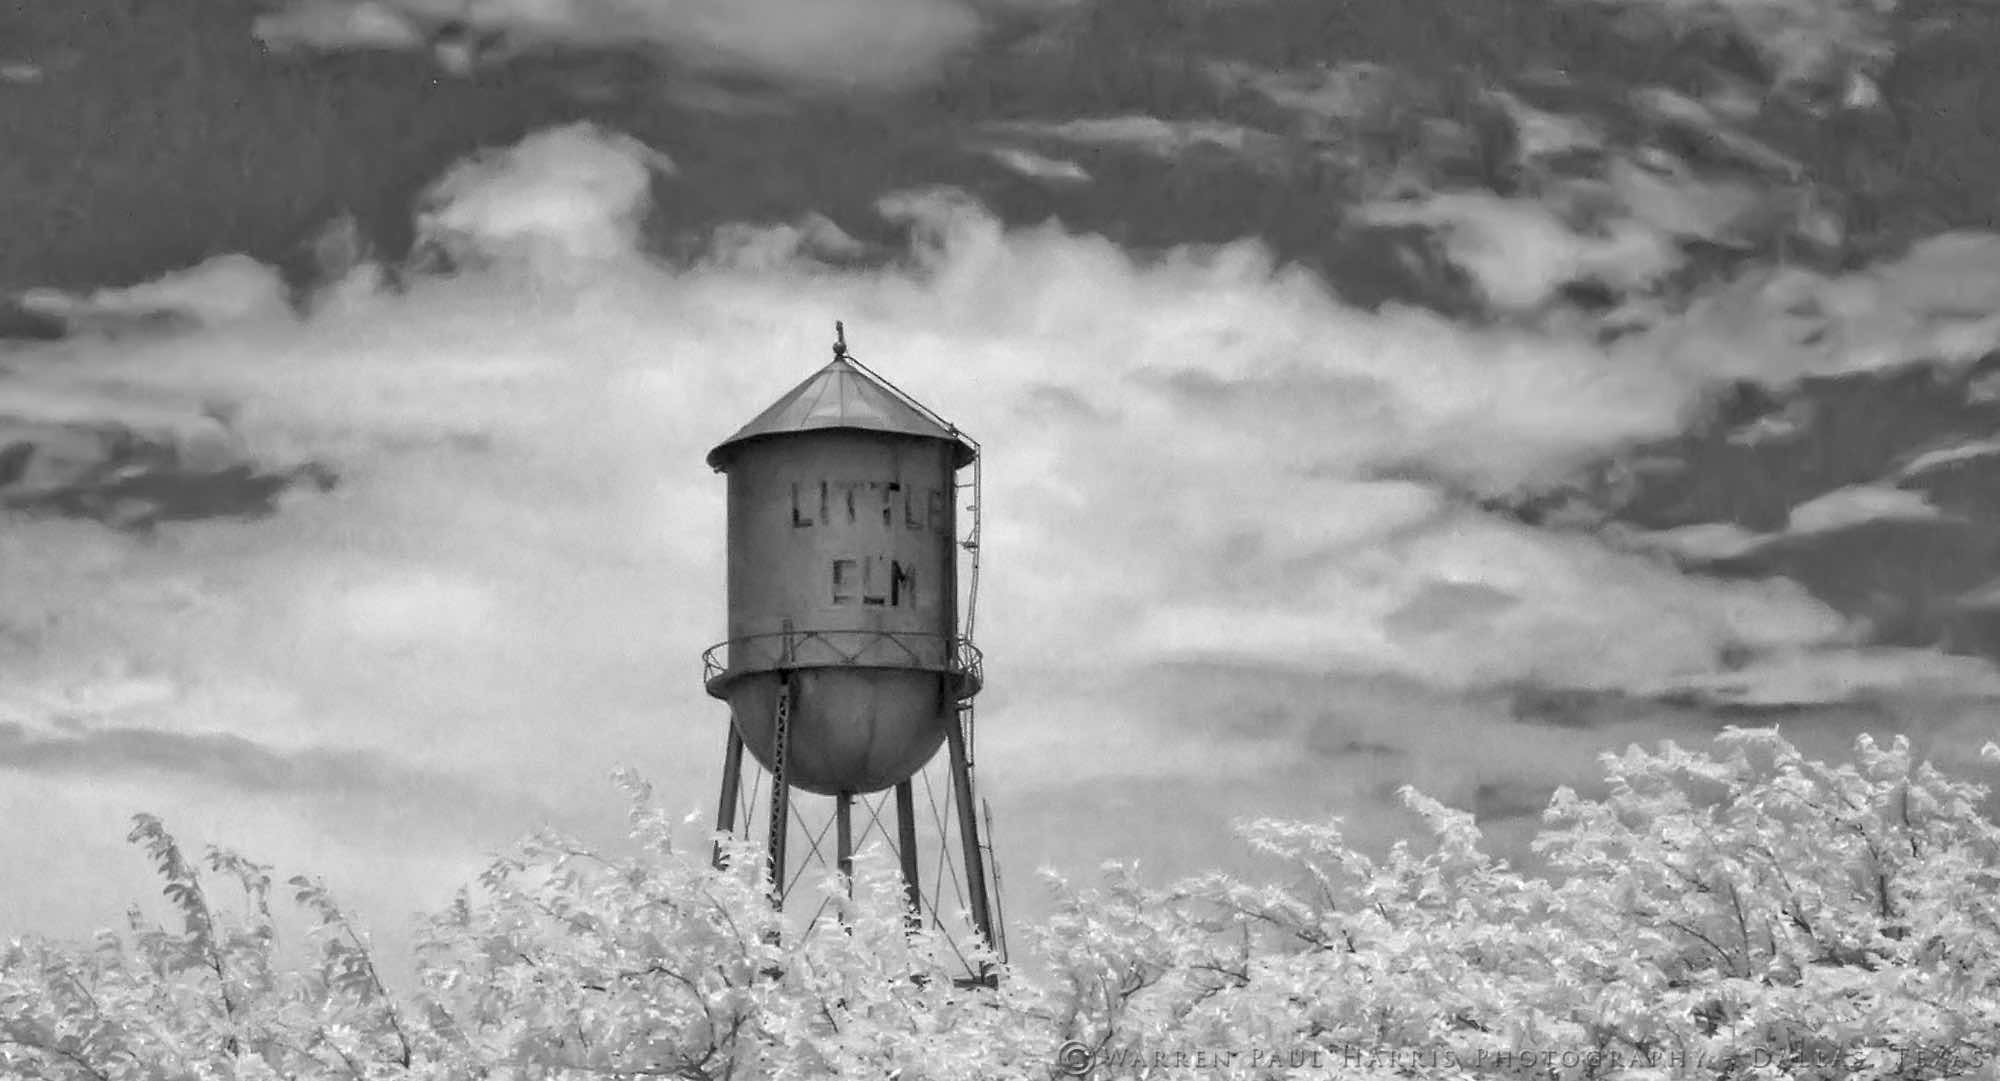 Little Elm, 2007. Infrared photography, 40 x 22 inches